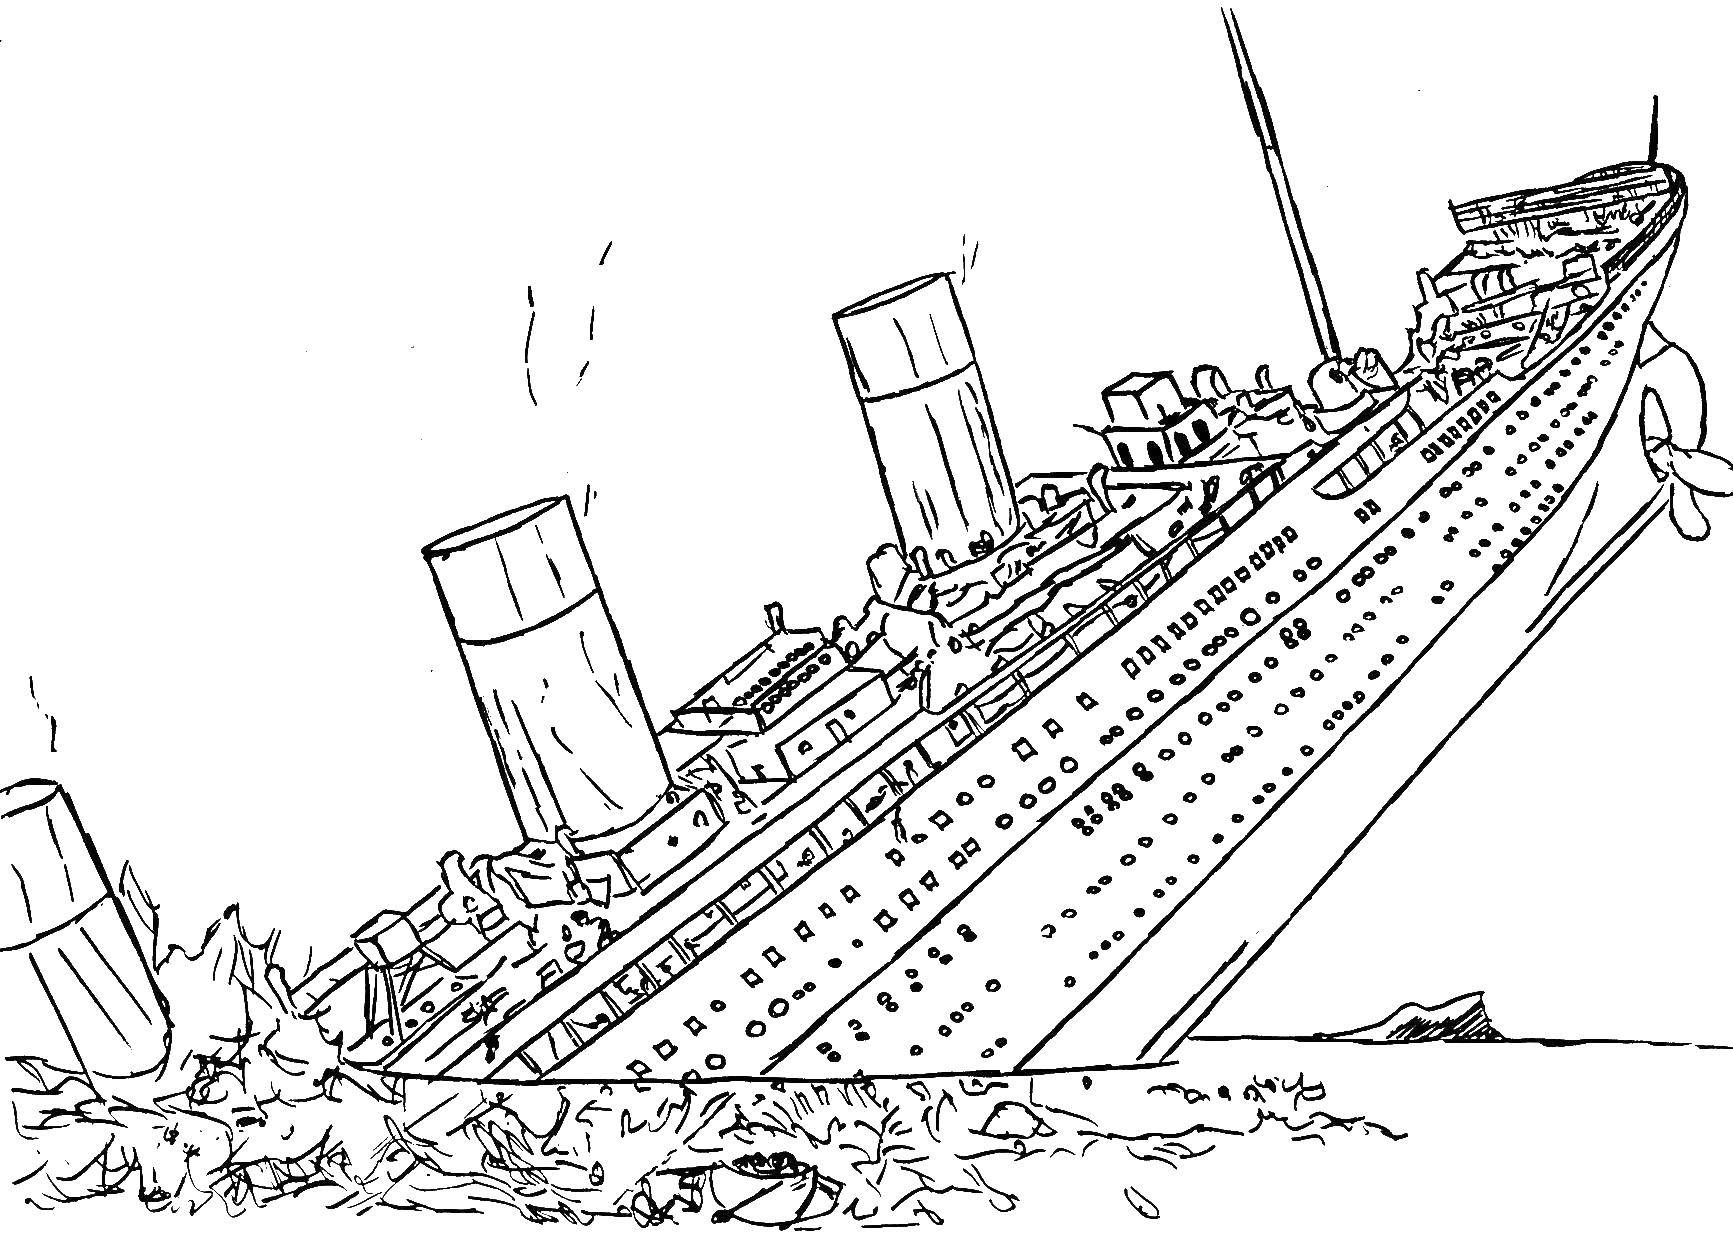 titanic ship titanic coloring pages titanic ship drawing at getdrawings free download coloring titanic ship titanic pages